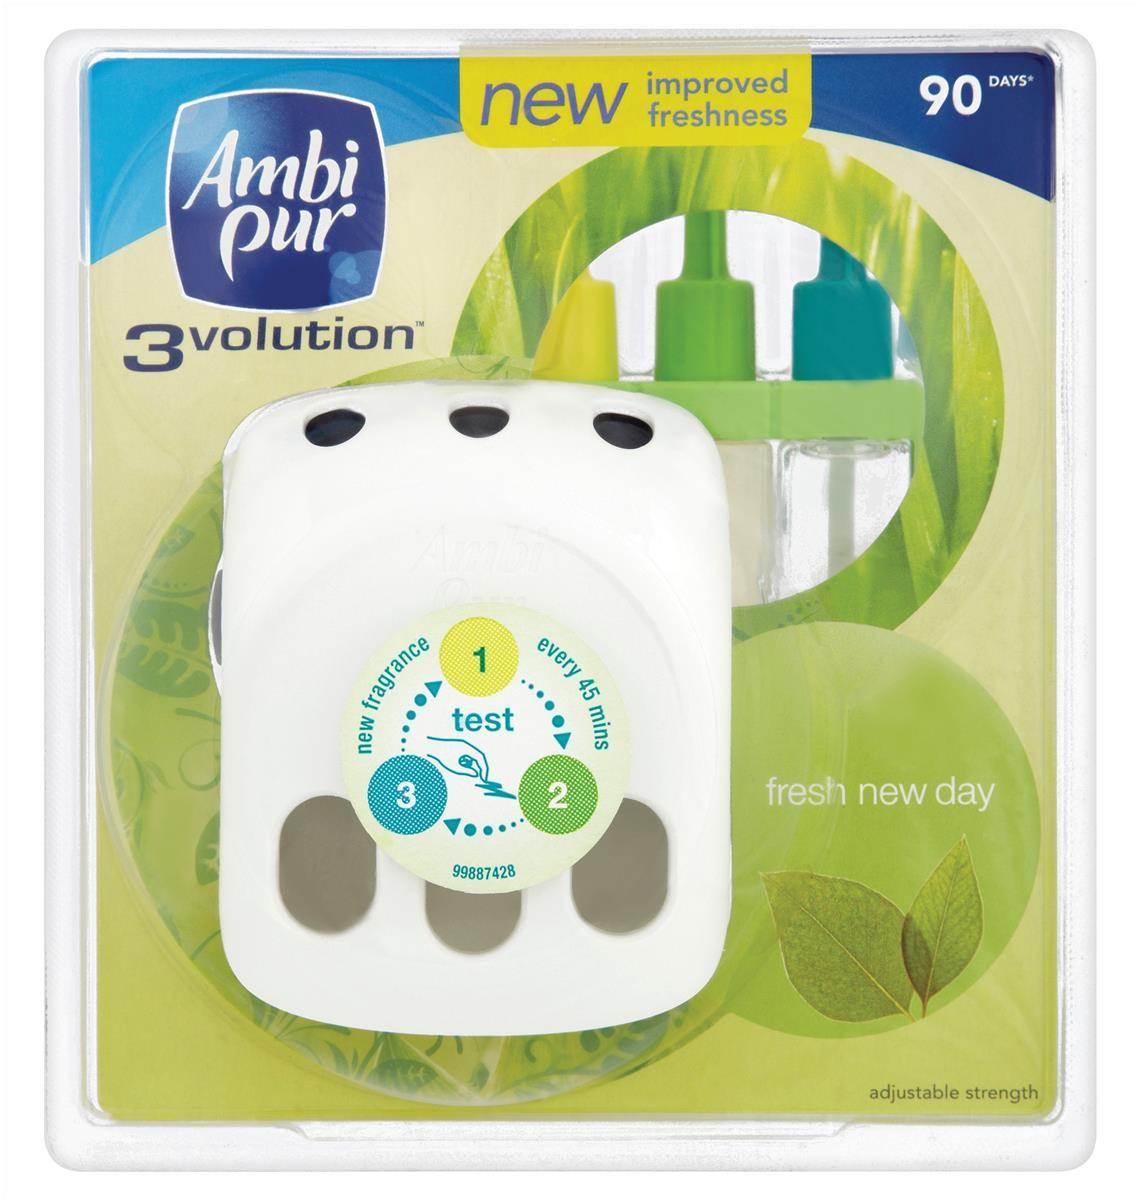 Image for Ambi Pur 3volution Fragrance Unit Device Only Ref 95535